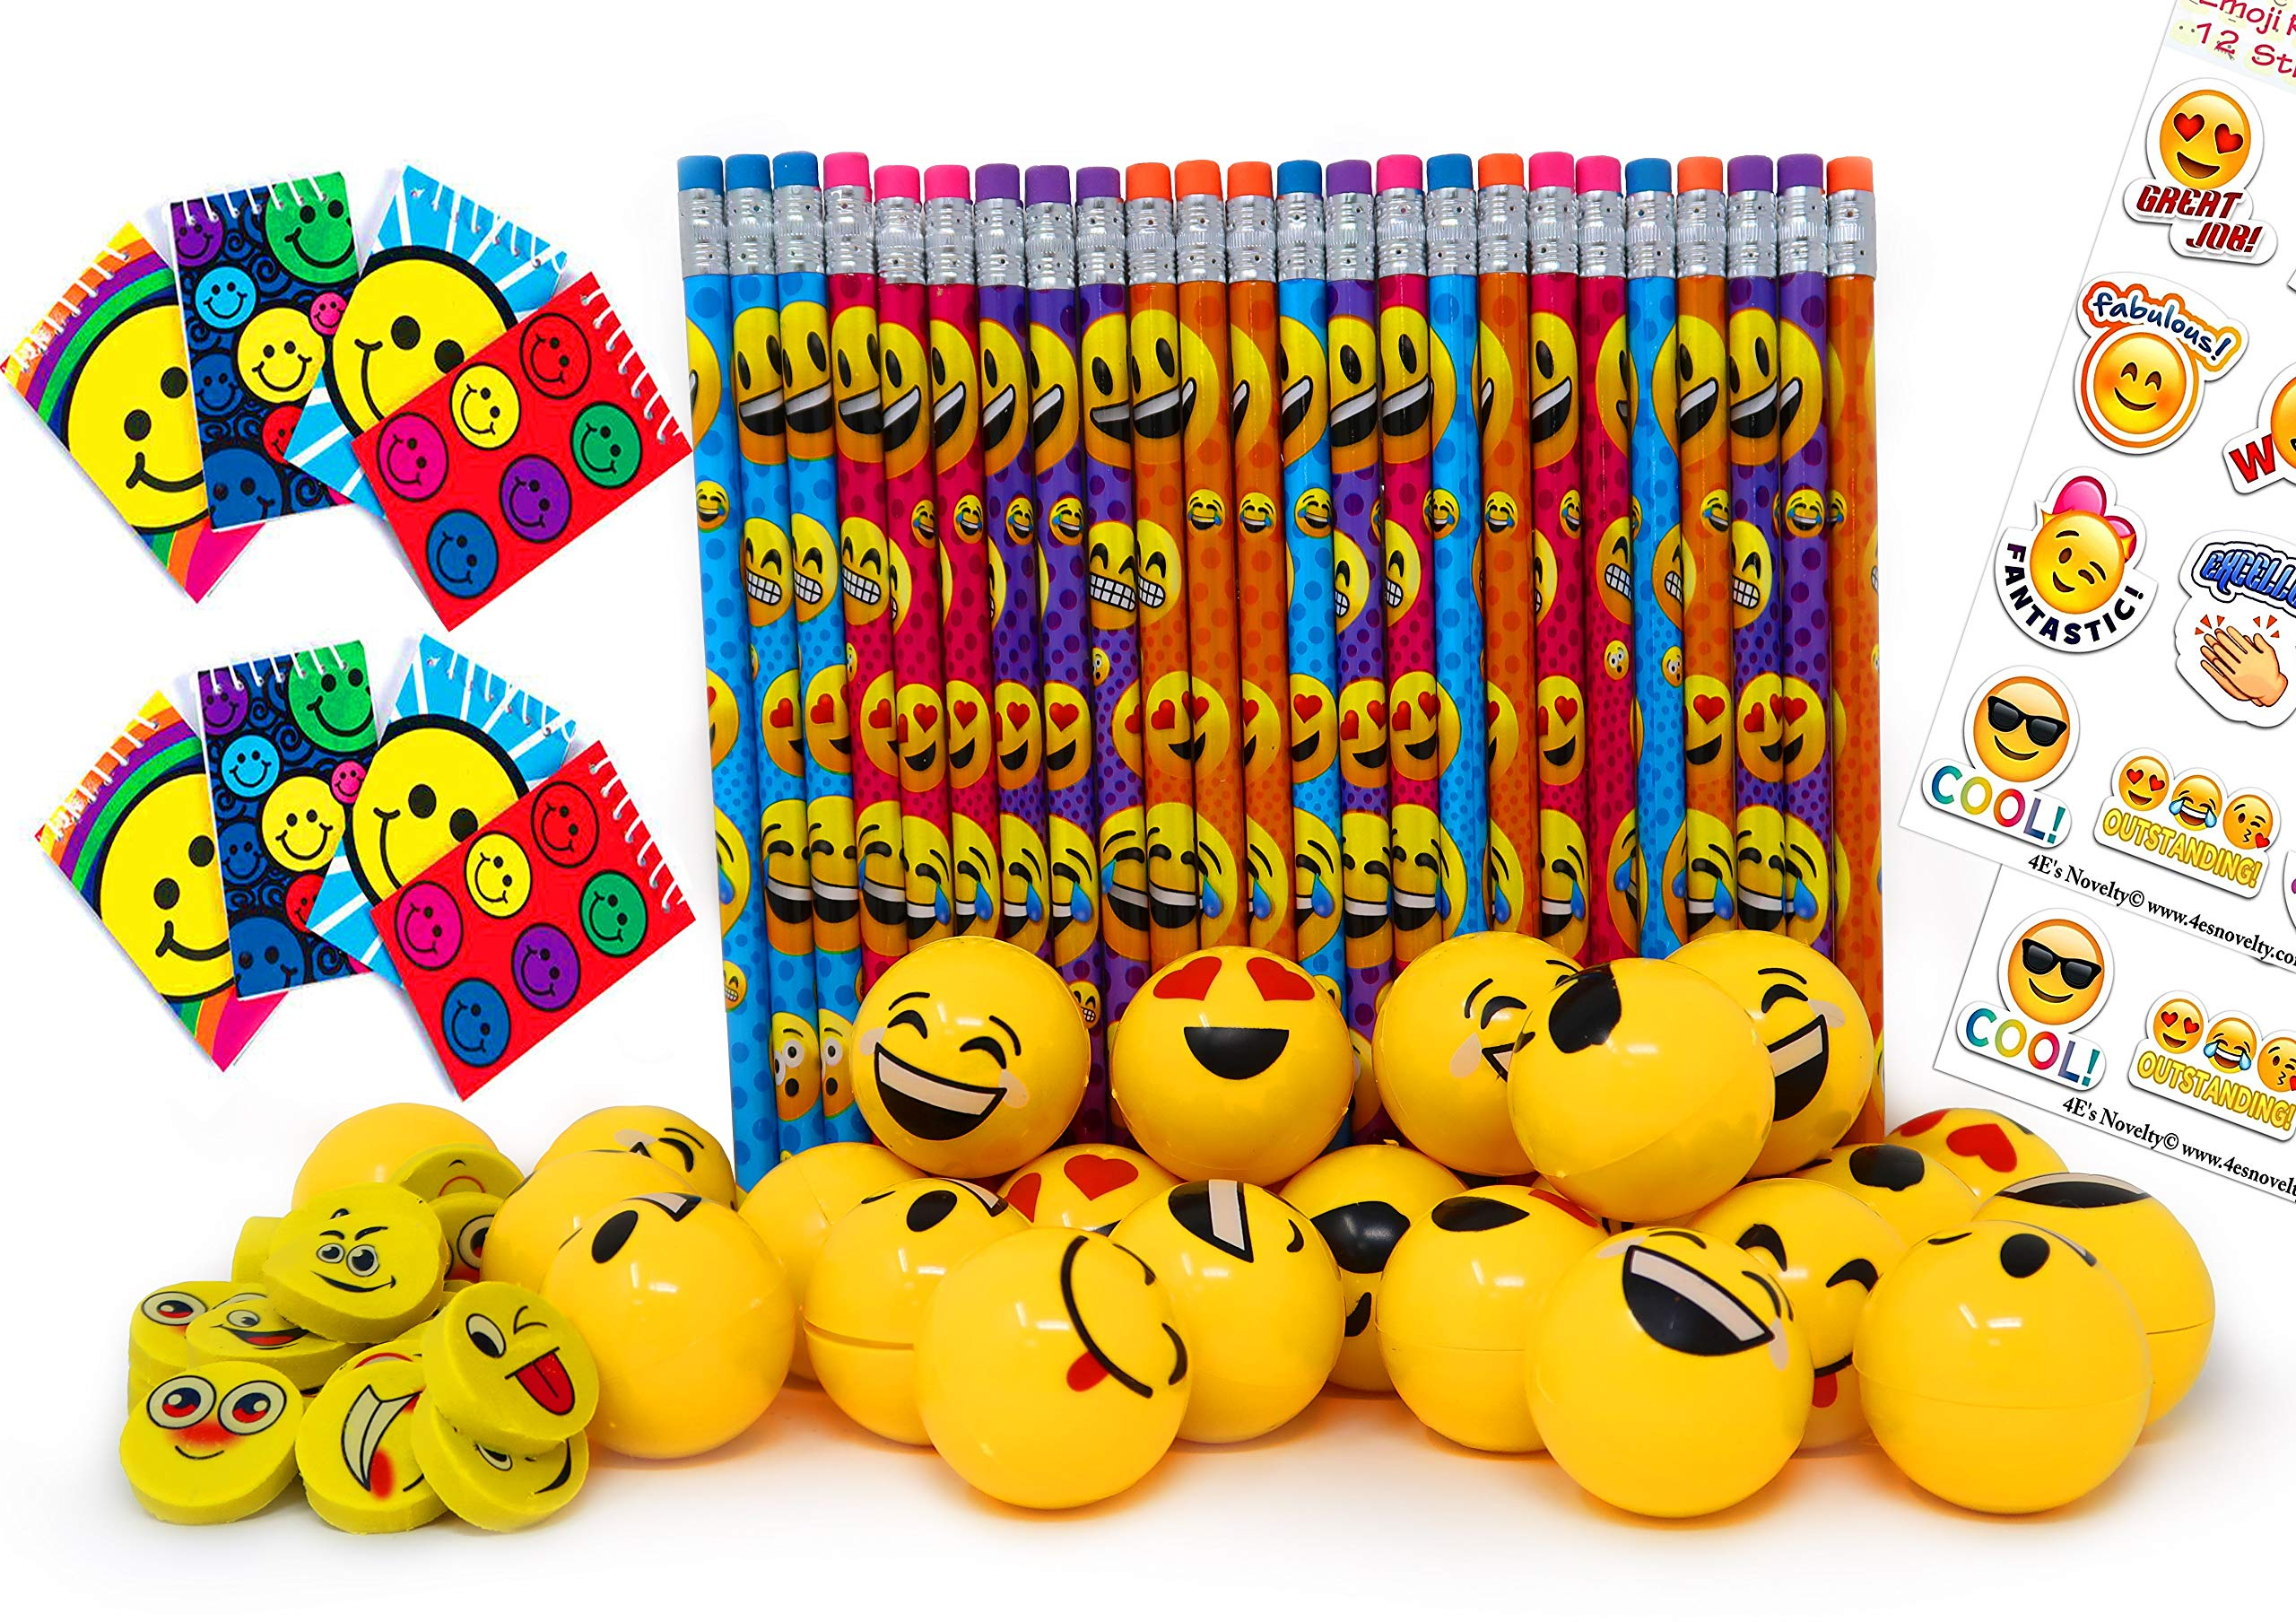 Emoji Party Favors Set for Kids, 24 Pencils 24 Erasers 24 Yellow Sharpeners 24 Notebooks and 2 Sheets Stickers, Bulk Prizes Pack for Birthday Parties and Goody Bag Fillers, By 4E's Novelty by 4E's Novelty